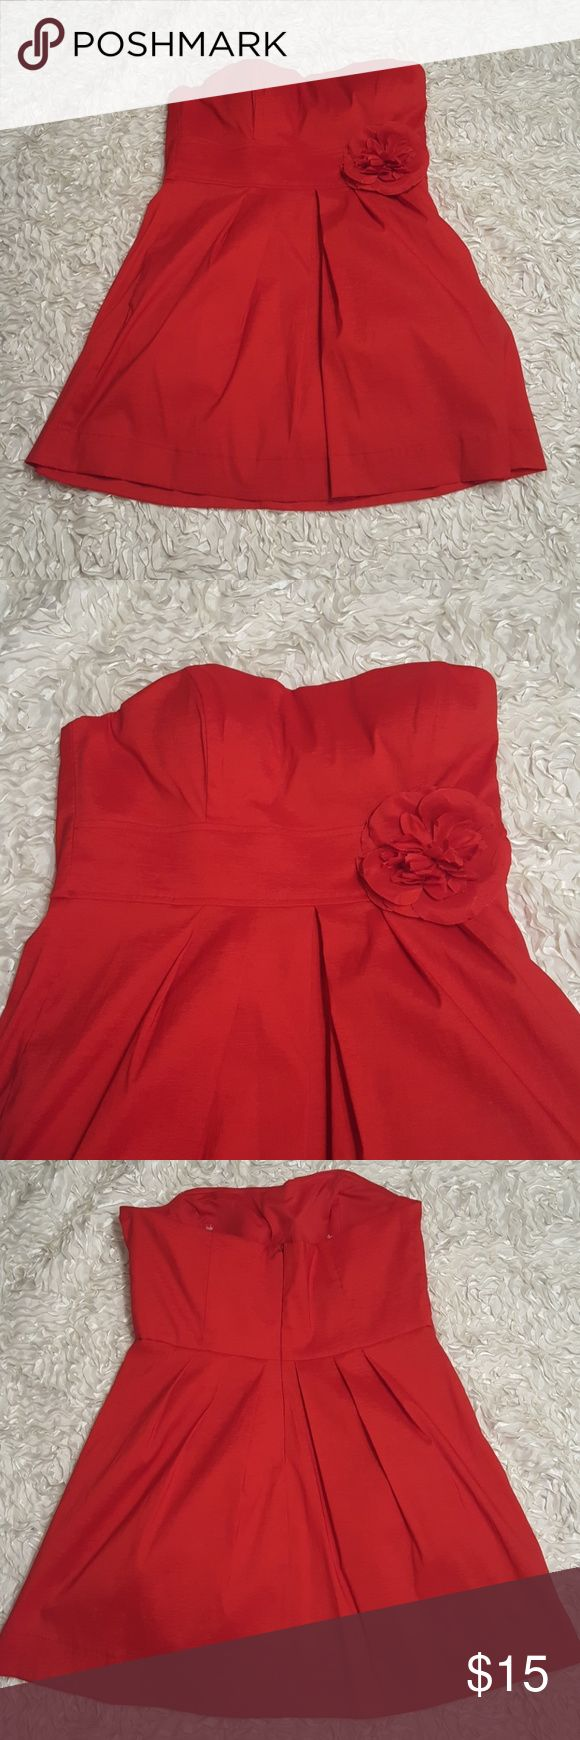 Short strapless red dress with flower pin Super cute bright red dress with flower pin on waist. Fun for a dance! Small amout of tool under skirt that gives it a little volume Blondie Nites Dresses Midi